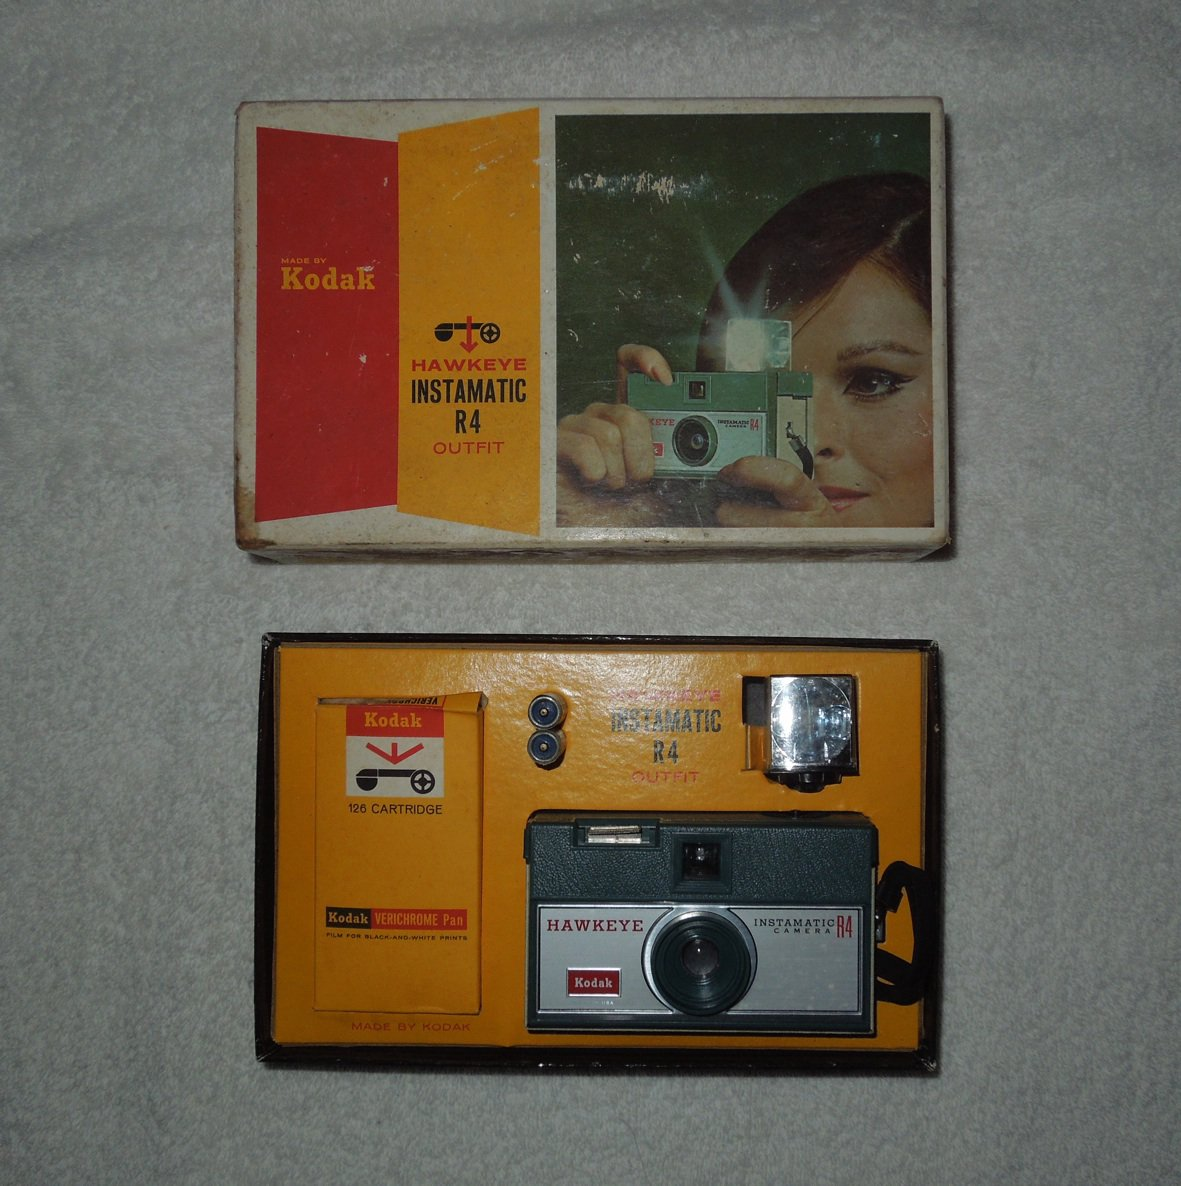 Kodak - Hawkeye Instamatic R4 Camera - Includes Original Box -  No. A74S - Vintage